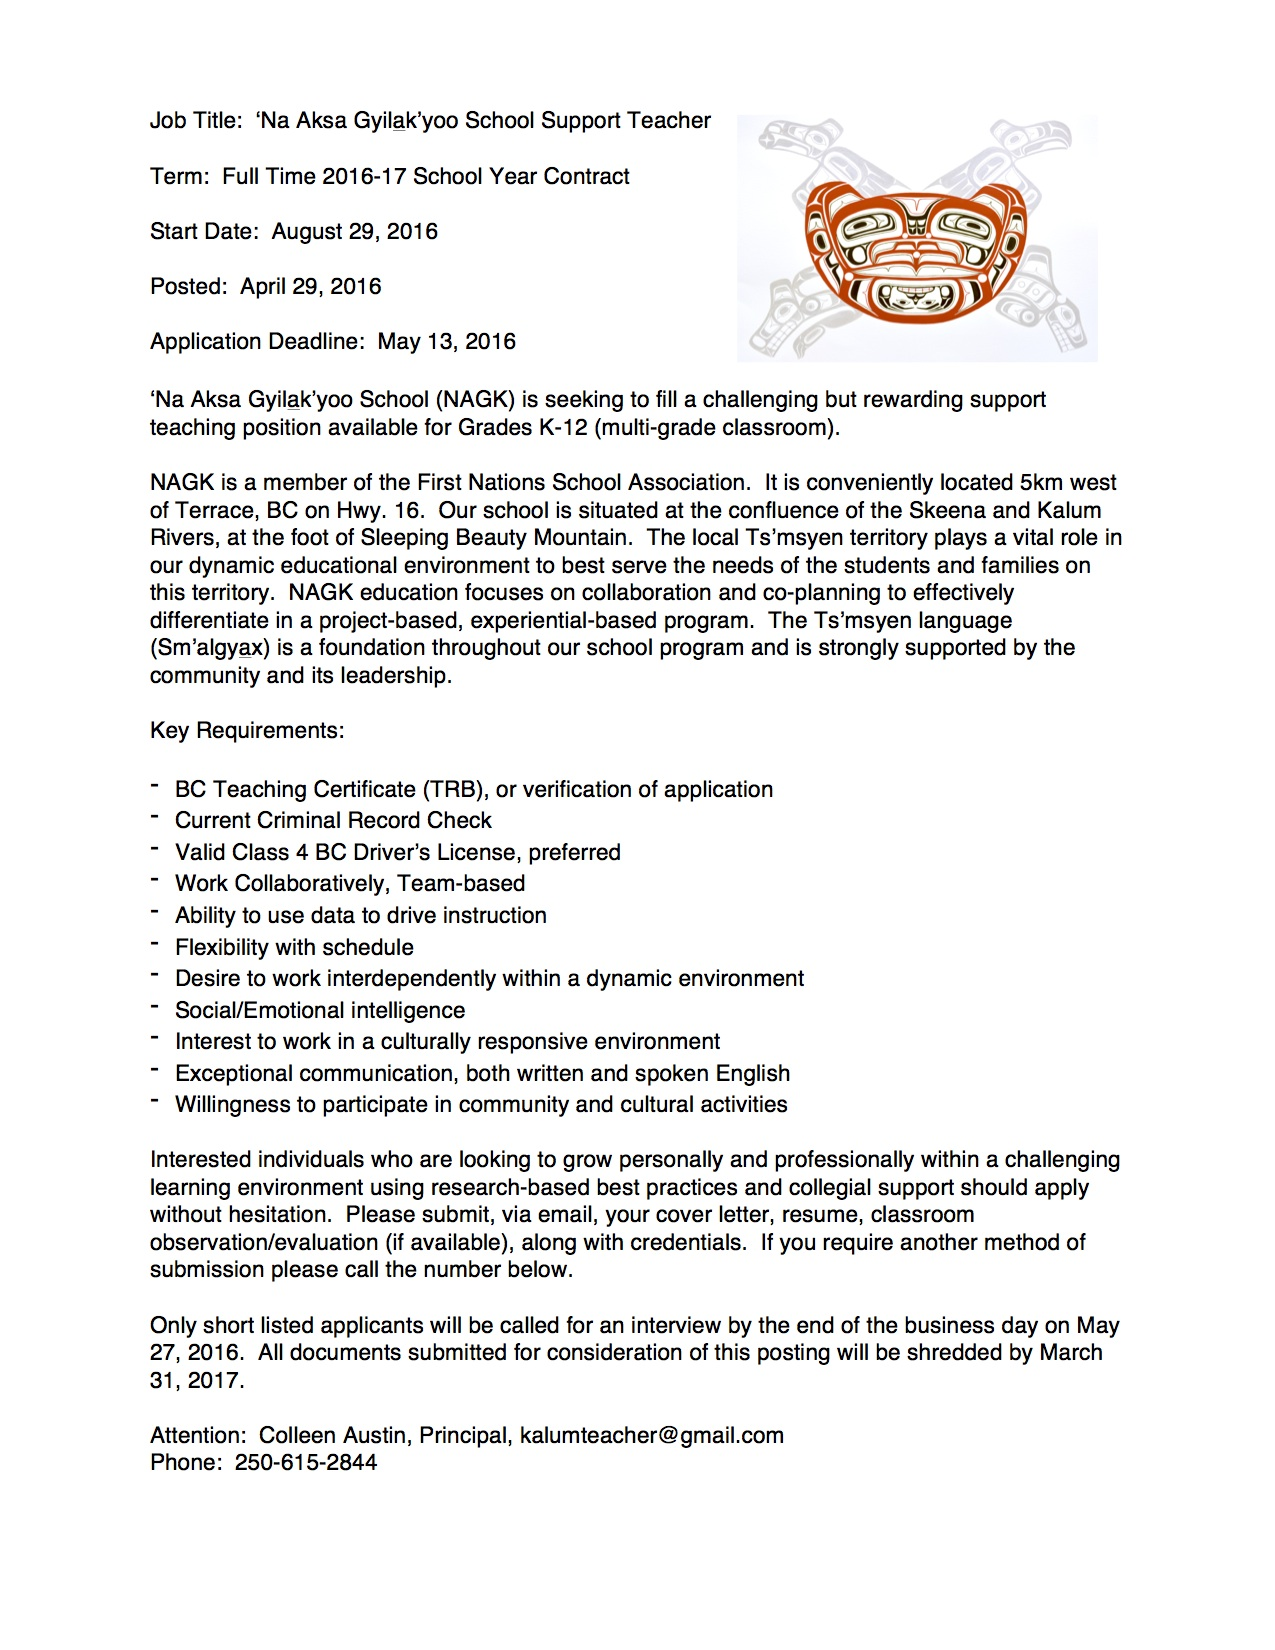 Teaching Job Application Cover Letter Image collections - Cover ...